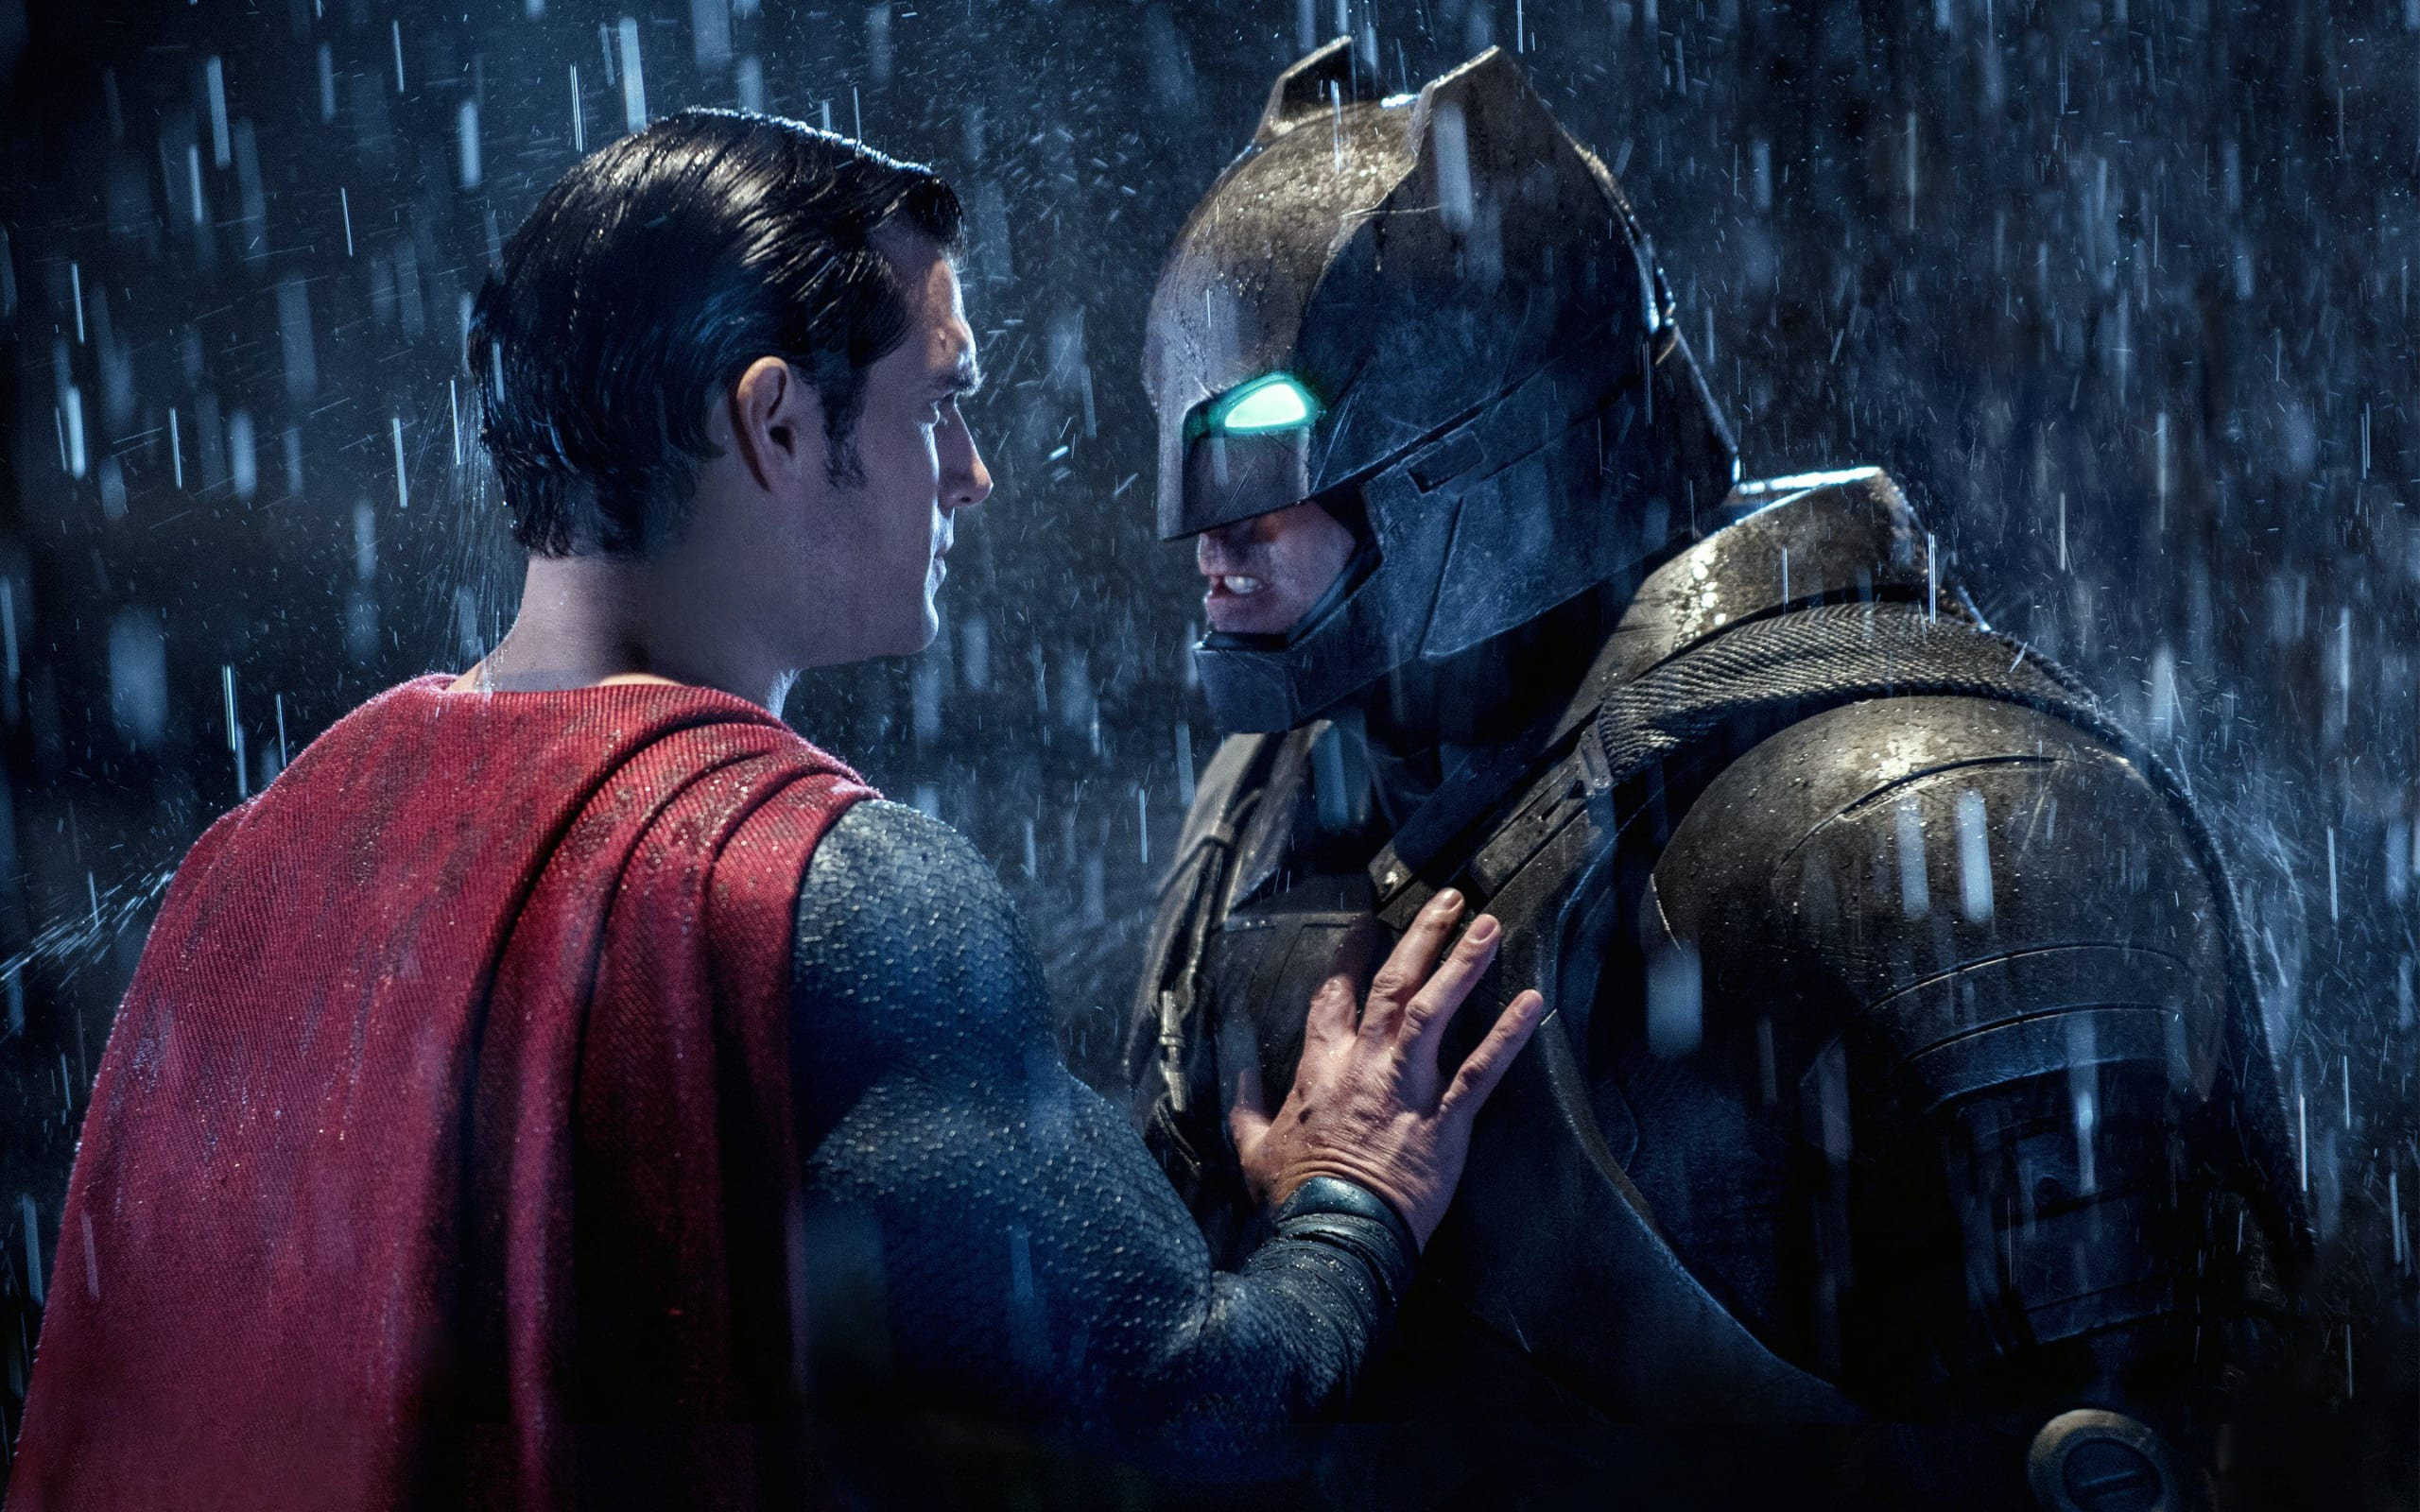 Batman v Superman: Zack Snyder rivela i titoli alternativi